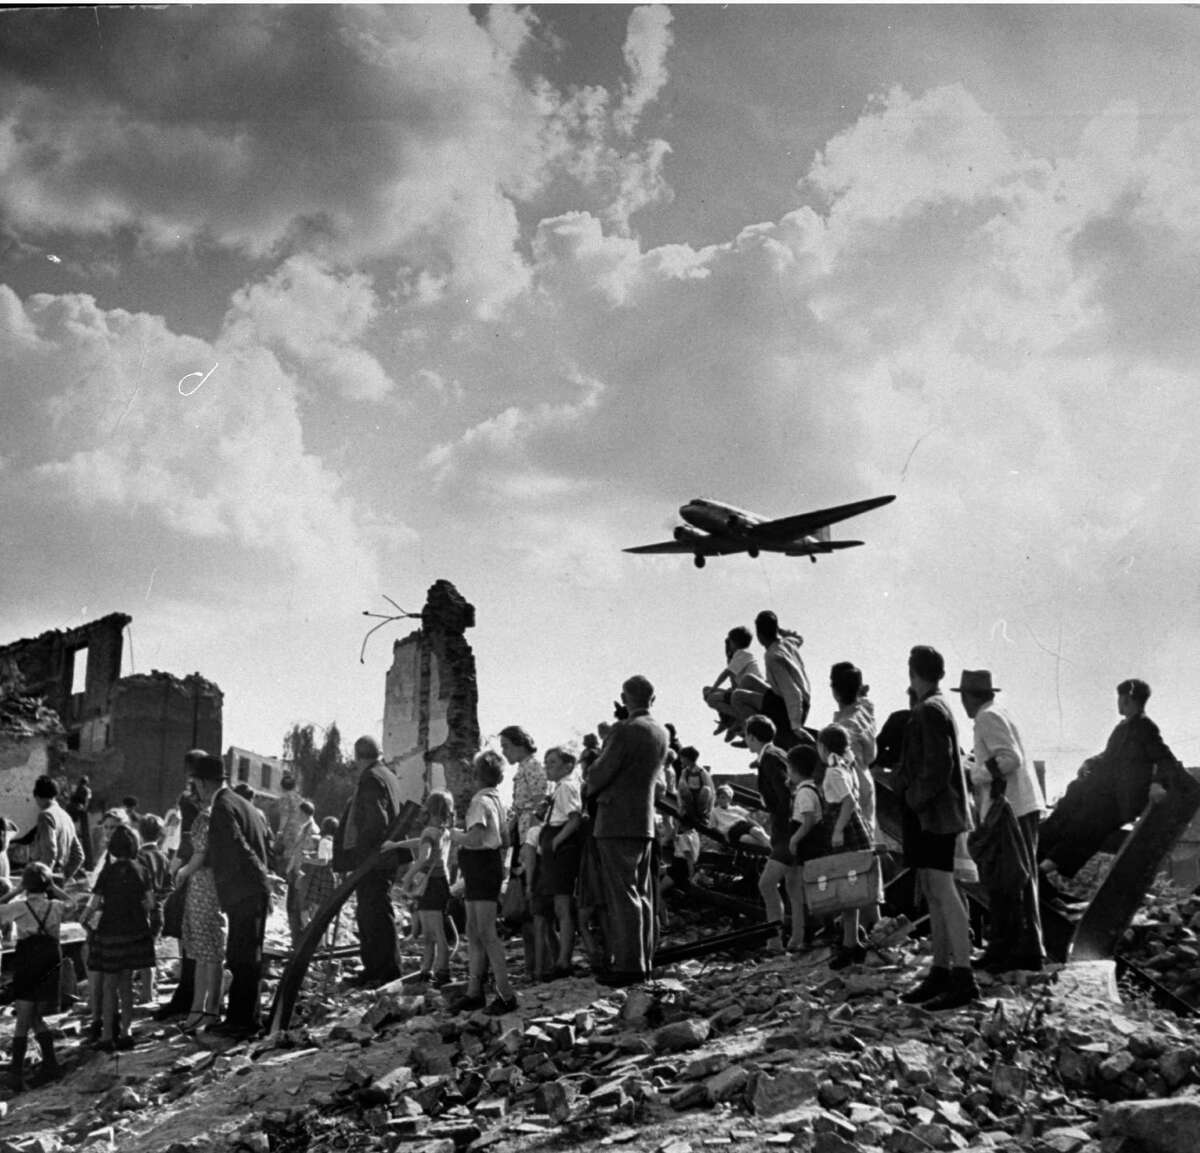 The Berlin Airlift - April 1948-May 1949 Widely seen as the first major escalation of the Cold War, America and it's Western allies subverted a Soviet blockade. Moscow wanted the United States out of occupied Berlin, and halted in train and truck traffic in. In response, the United States and allies flew over 200,000 flights to deliver supplies to residents of West Berlin, asserting the Americans' firm claim to the conquered European territories.